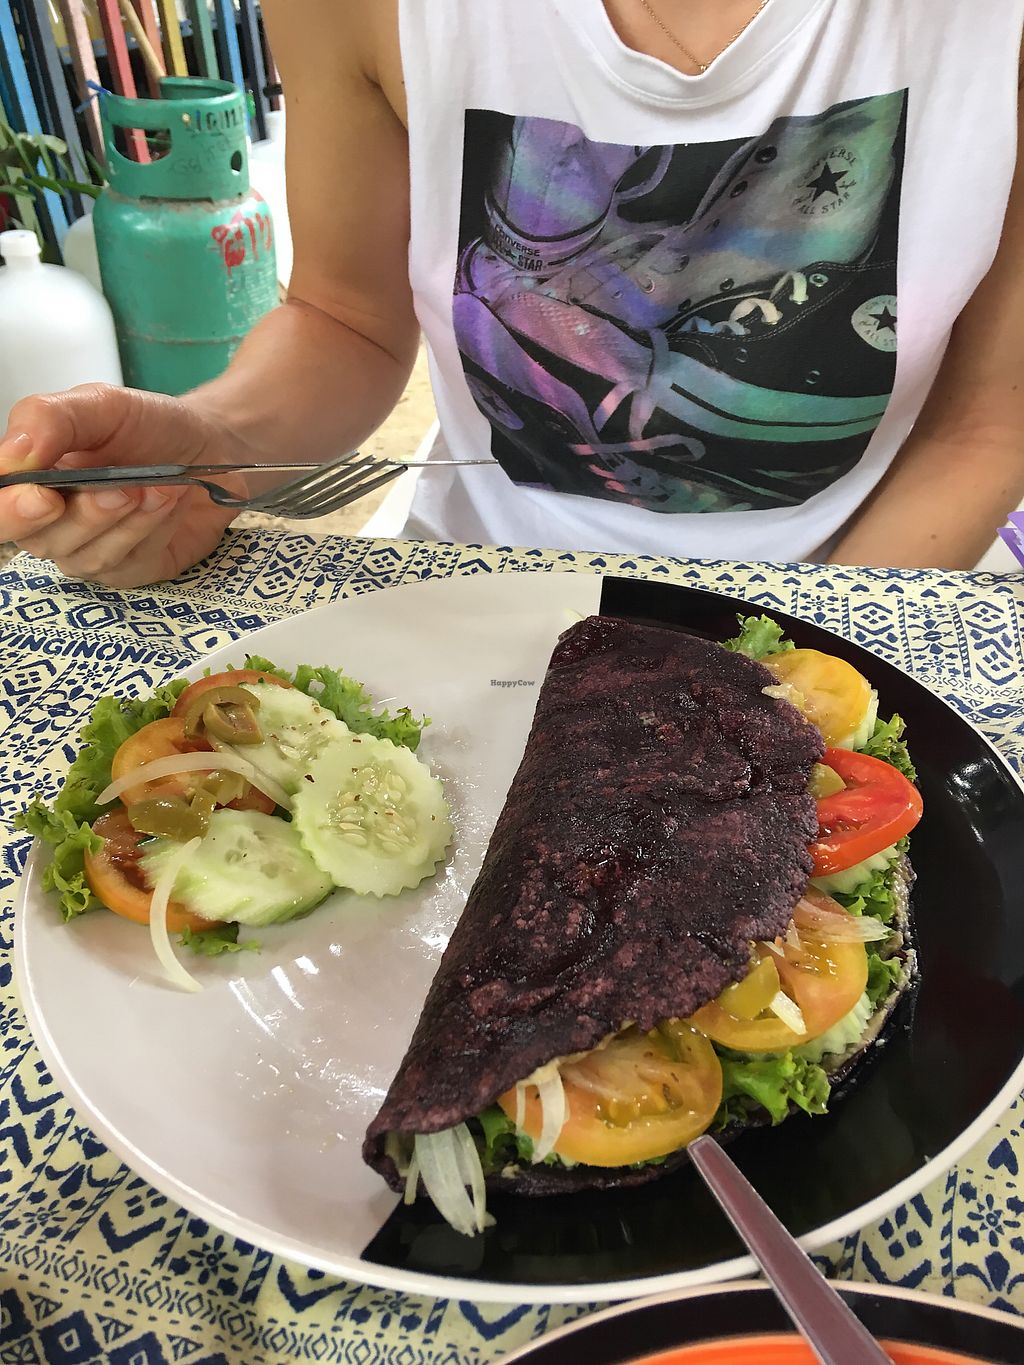 """Photo of Cha Chai Home  by <a href=""""/members/profile/mbaranya"""">mbaranya</a> <br/>Hummus Olive Pita Gluten Free ? <br/> December 17, 2017  - <a href='/contact/abuse/image/36658/336497'>Report</a>"""